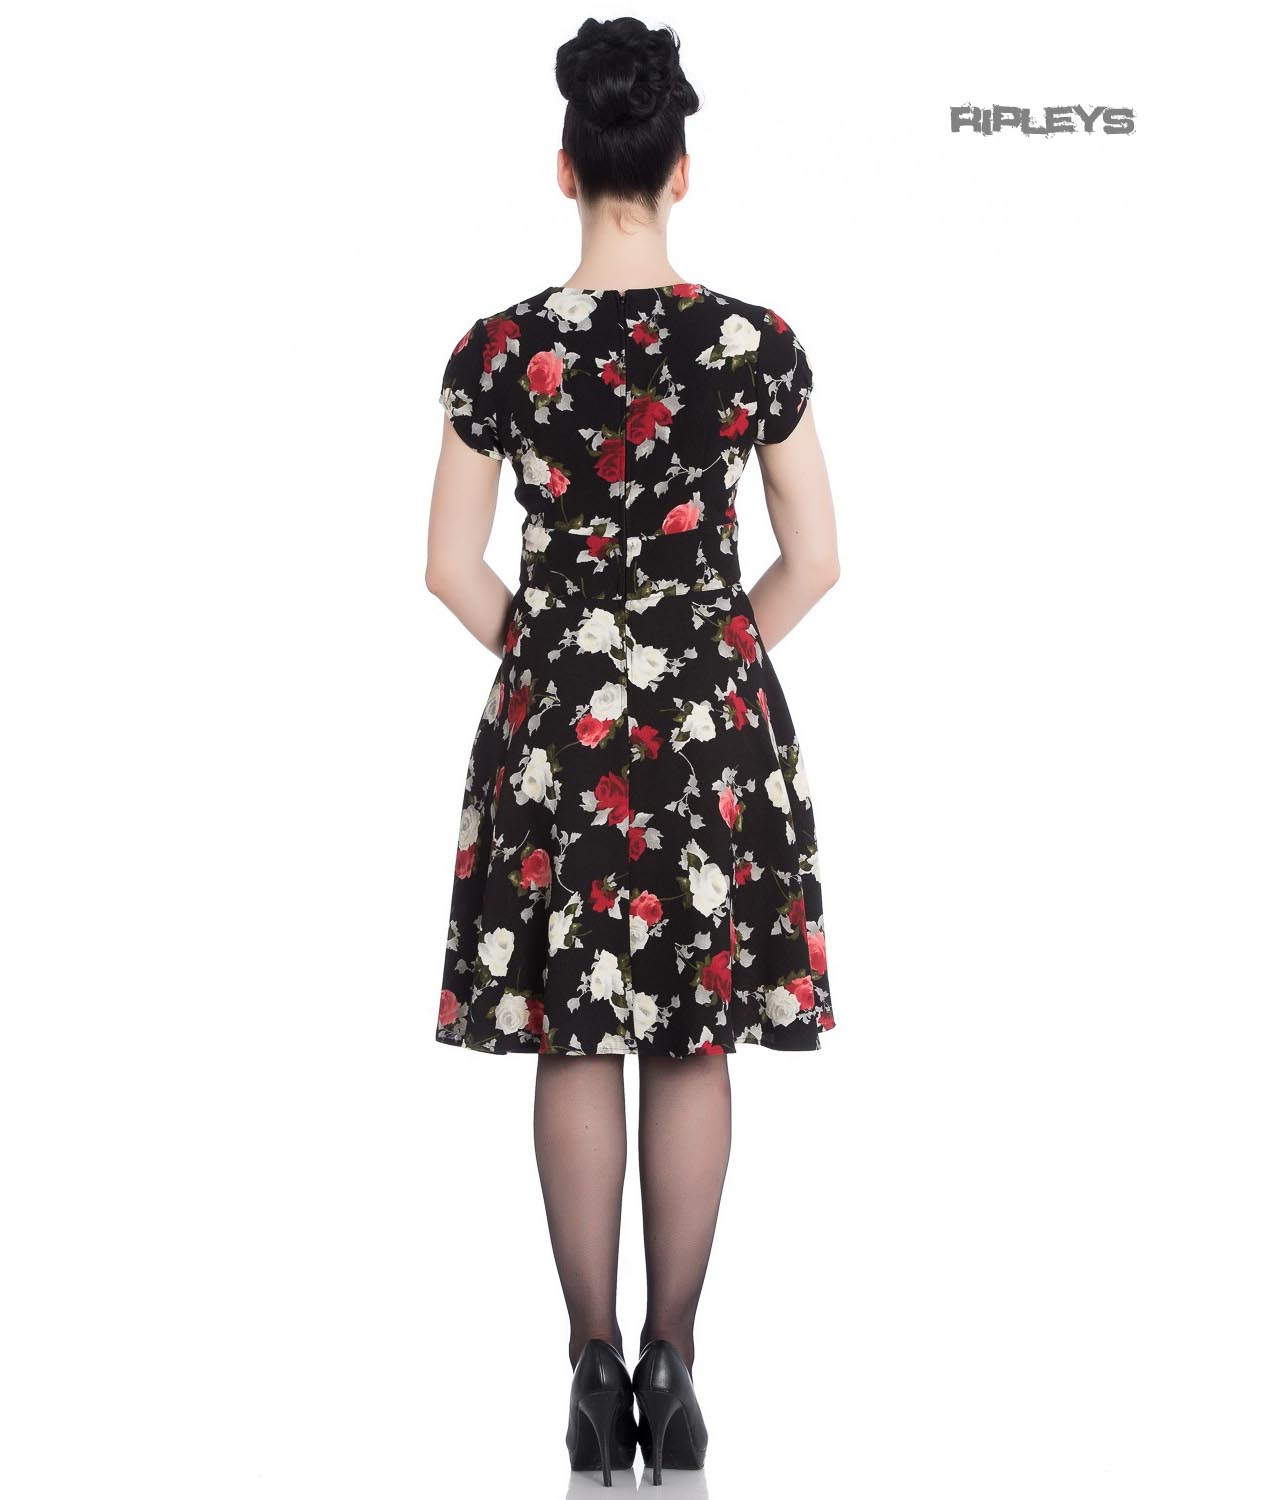 Hell-Bunny-40s-50s-Elegant-Pin-Up-Dress-VALENTINA-Black-Roses thumbnail 4